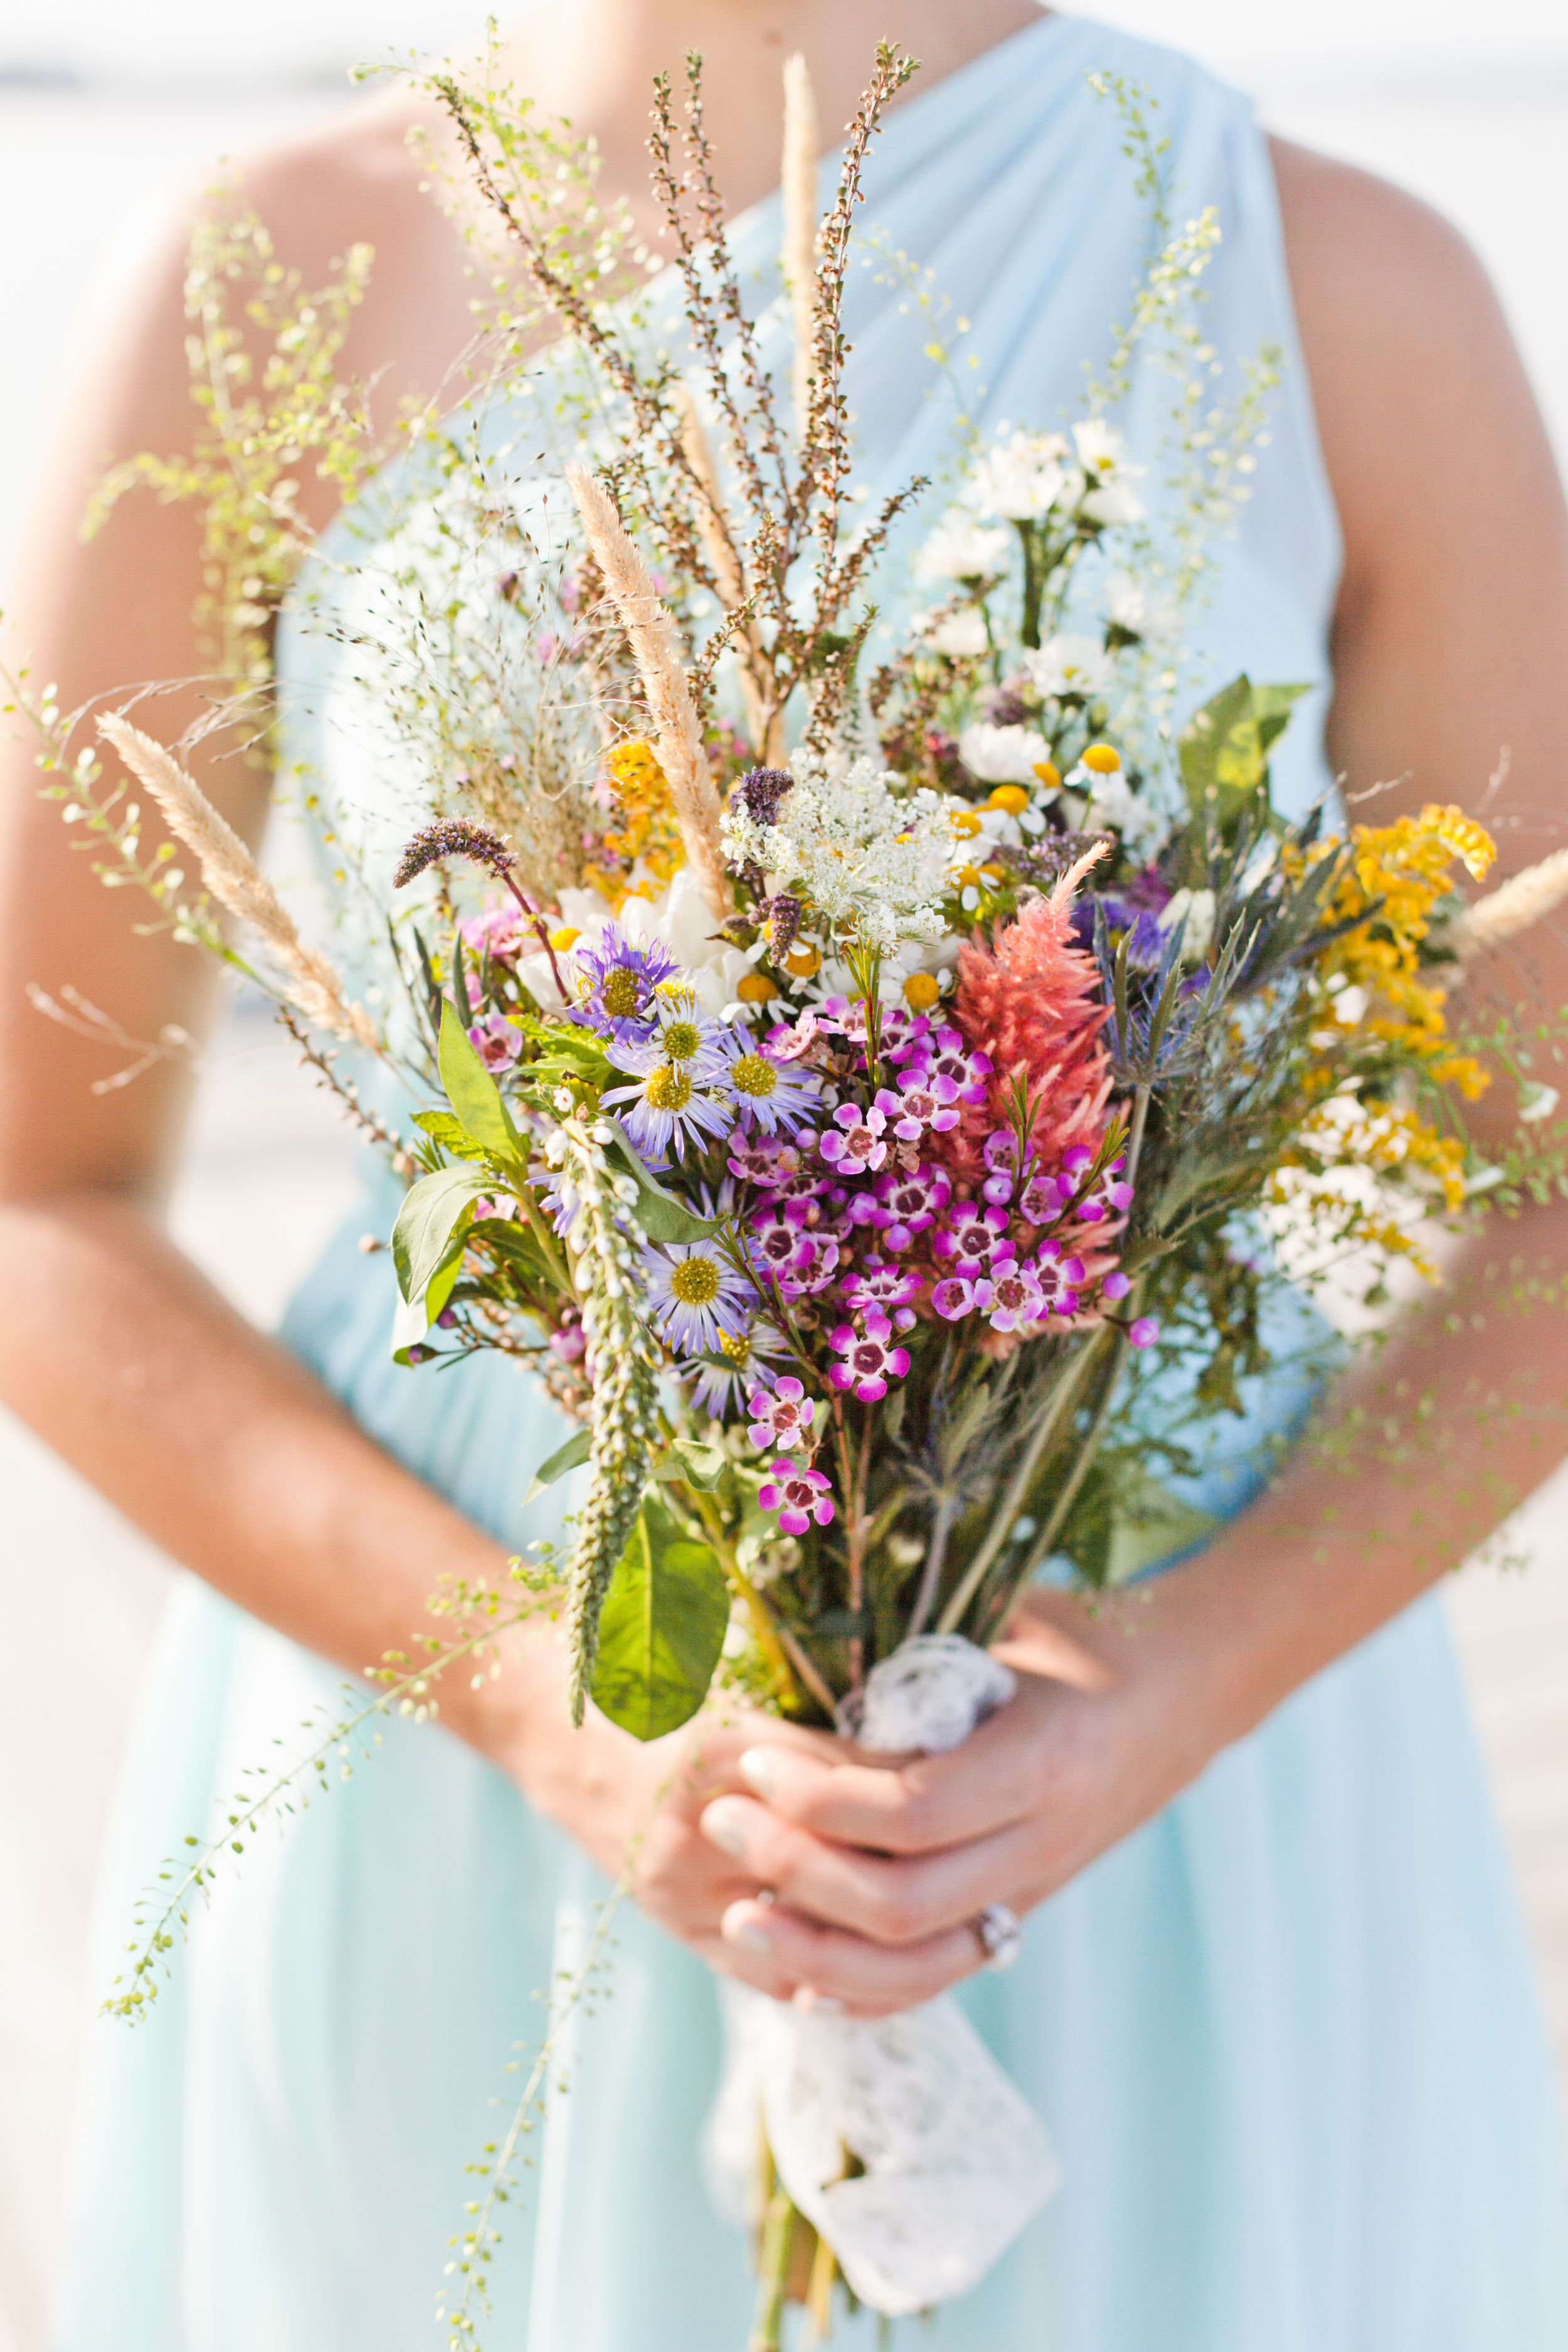 Wild flower bouquet wedding bouquet wedding days pinterest wild flower bouquet wedding bouquet izmirmasajfo